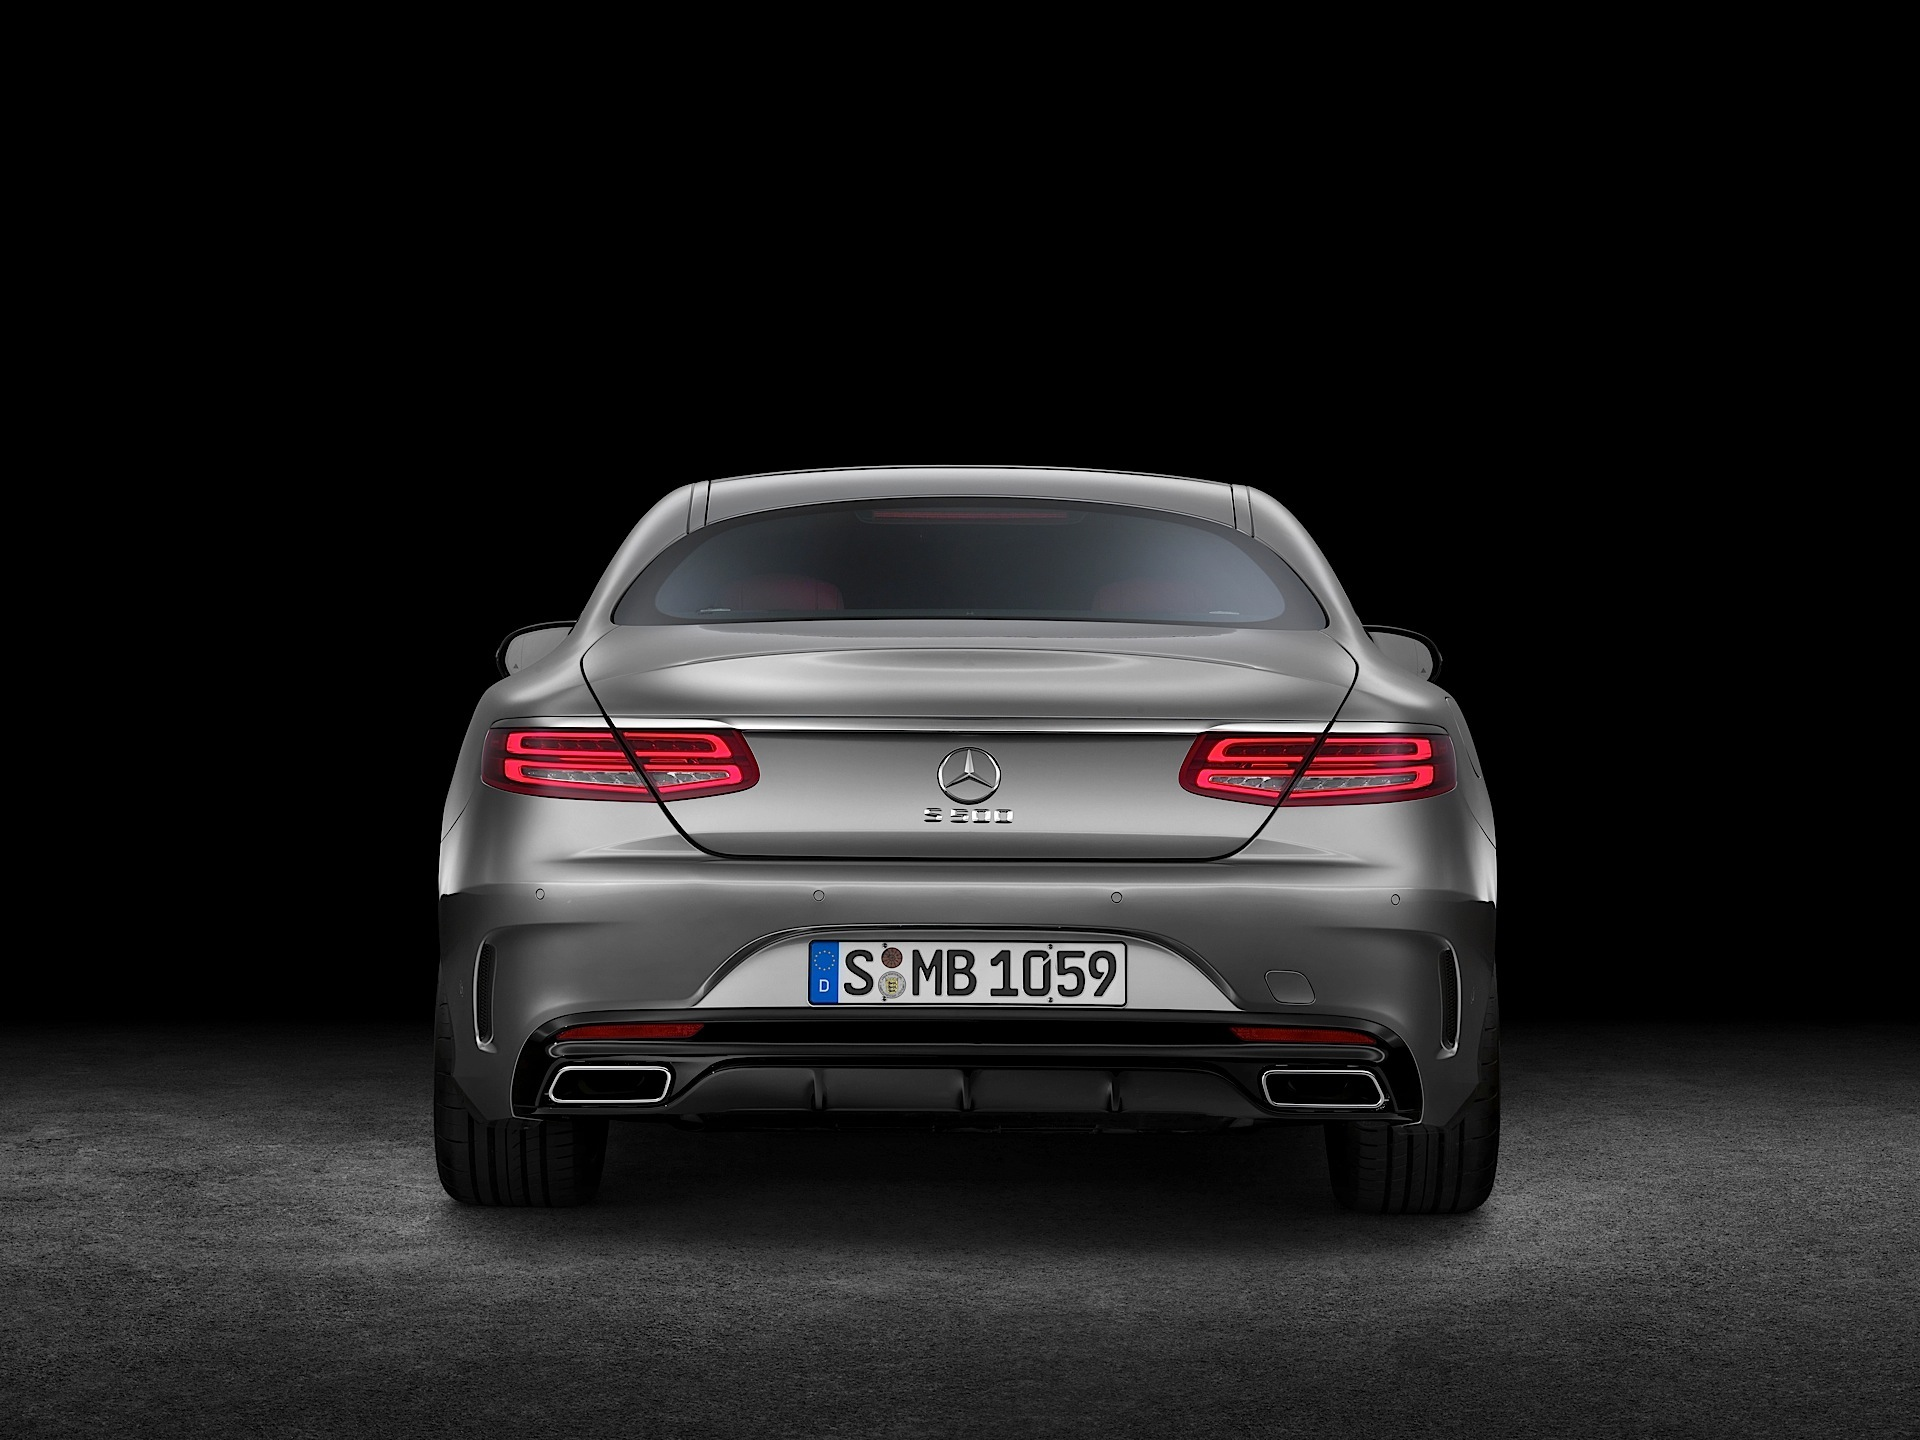 Mercedes benz s class coupe c217 specs 2014 2015 for Mercedes benz s550 coupe for sale